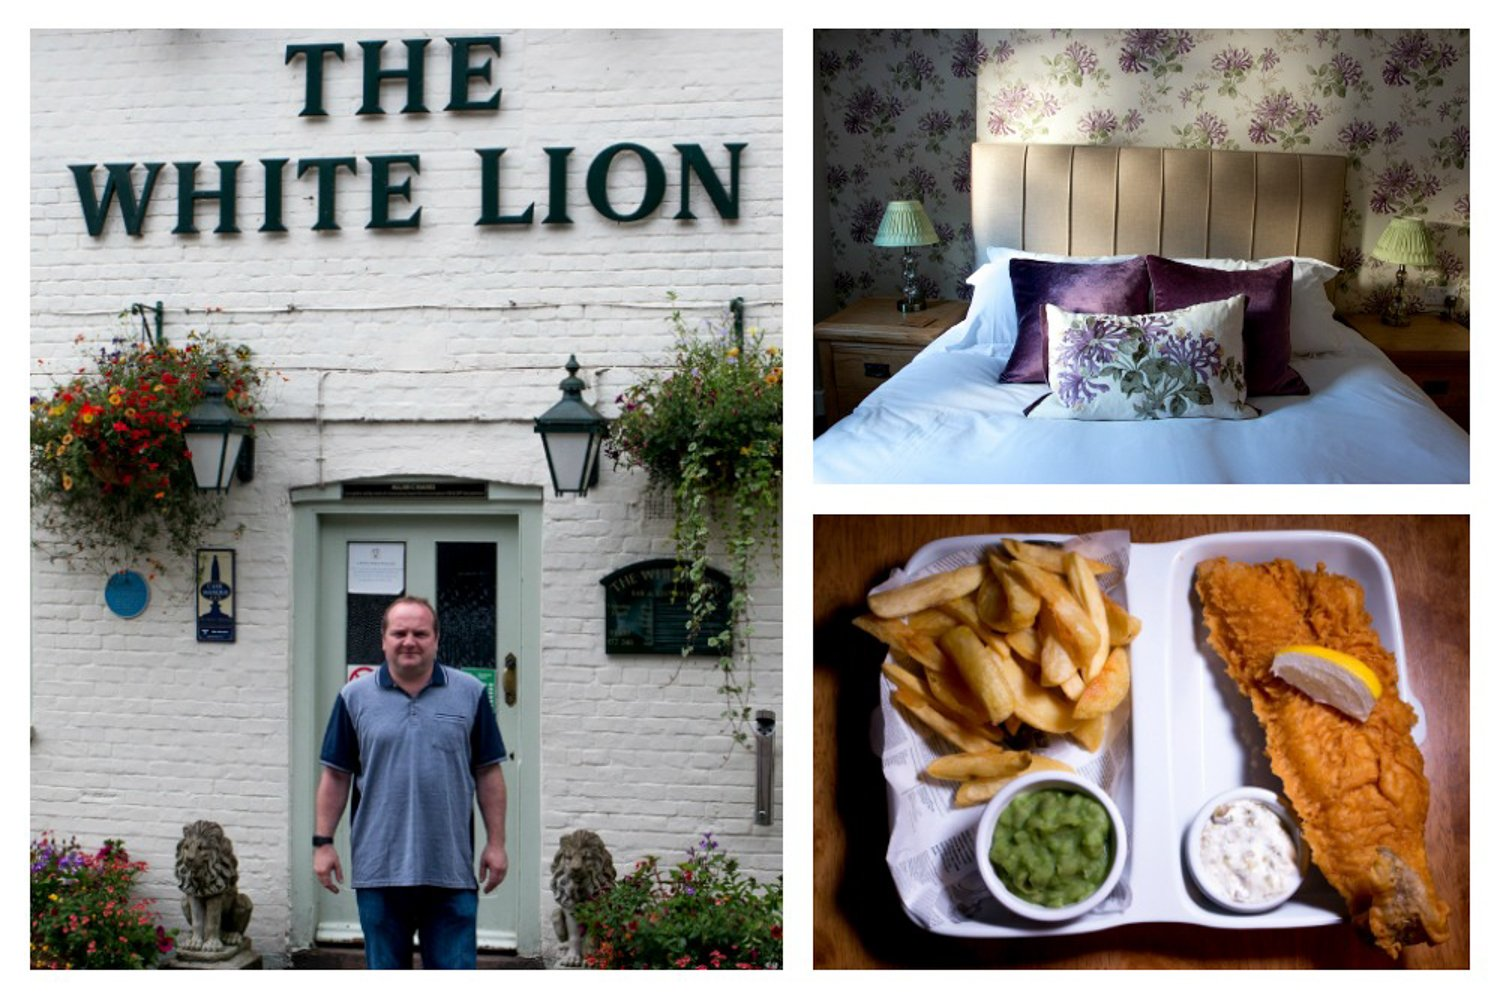 The White Lion in Soberton is a charming hotel with a wonderful pub. Hampshire. 5 Great Hotels in South England